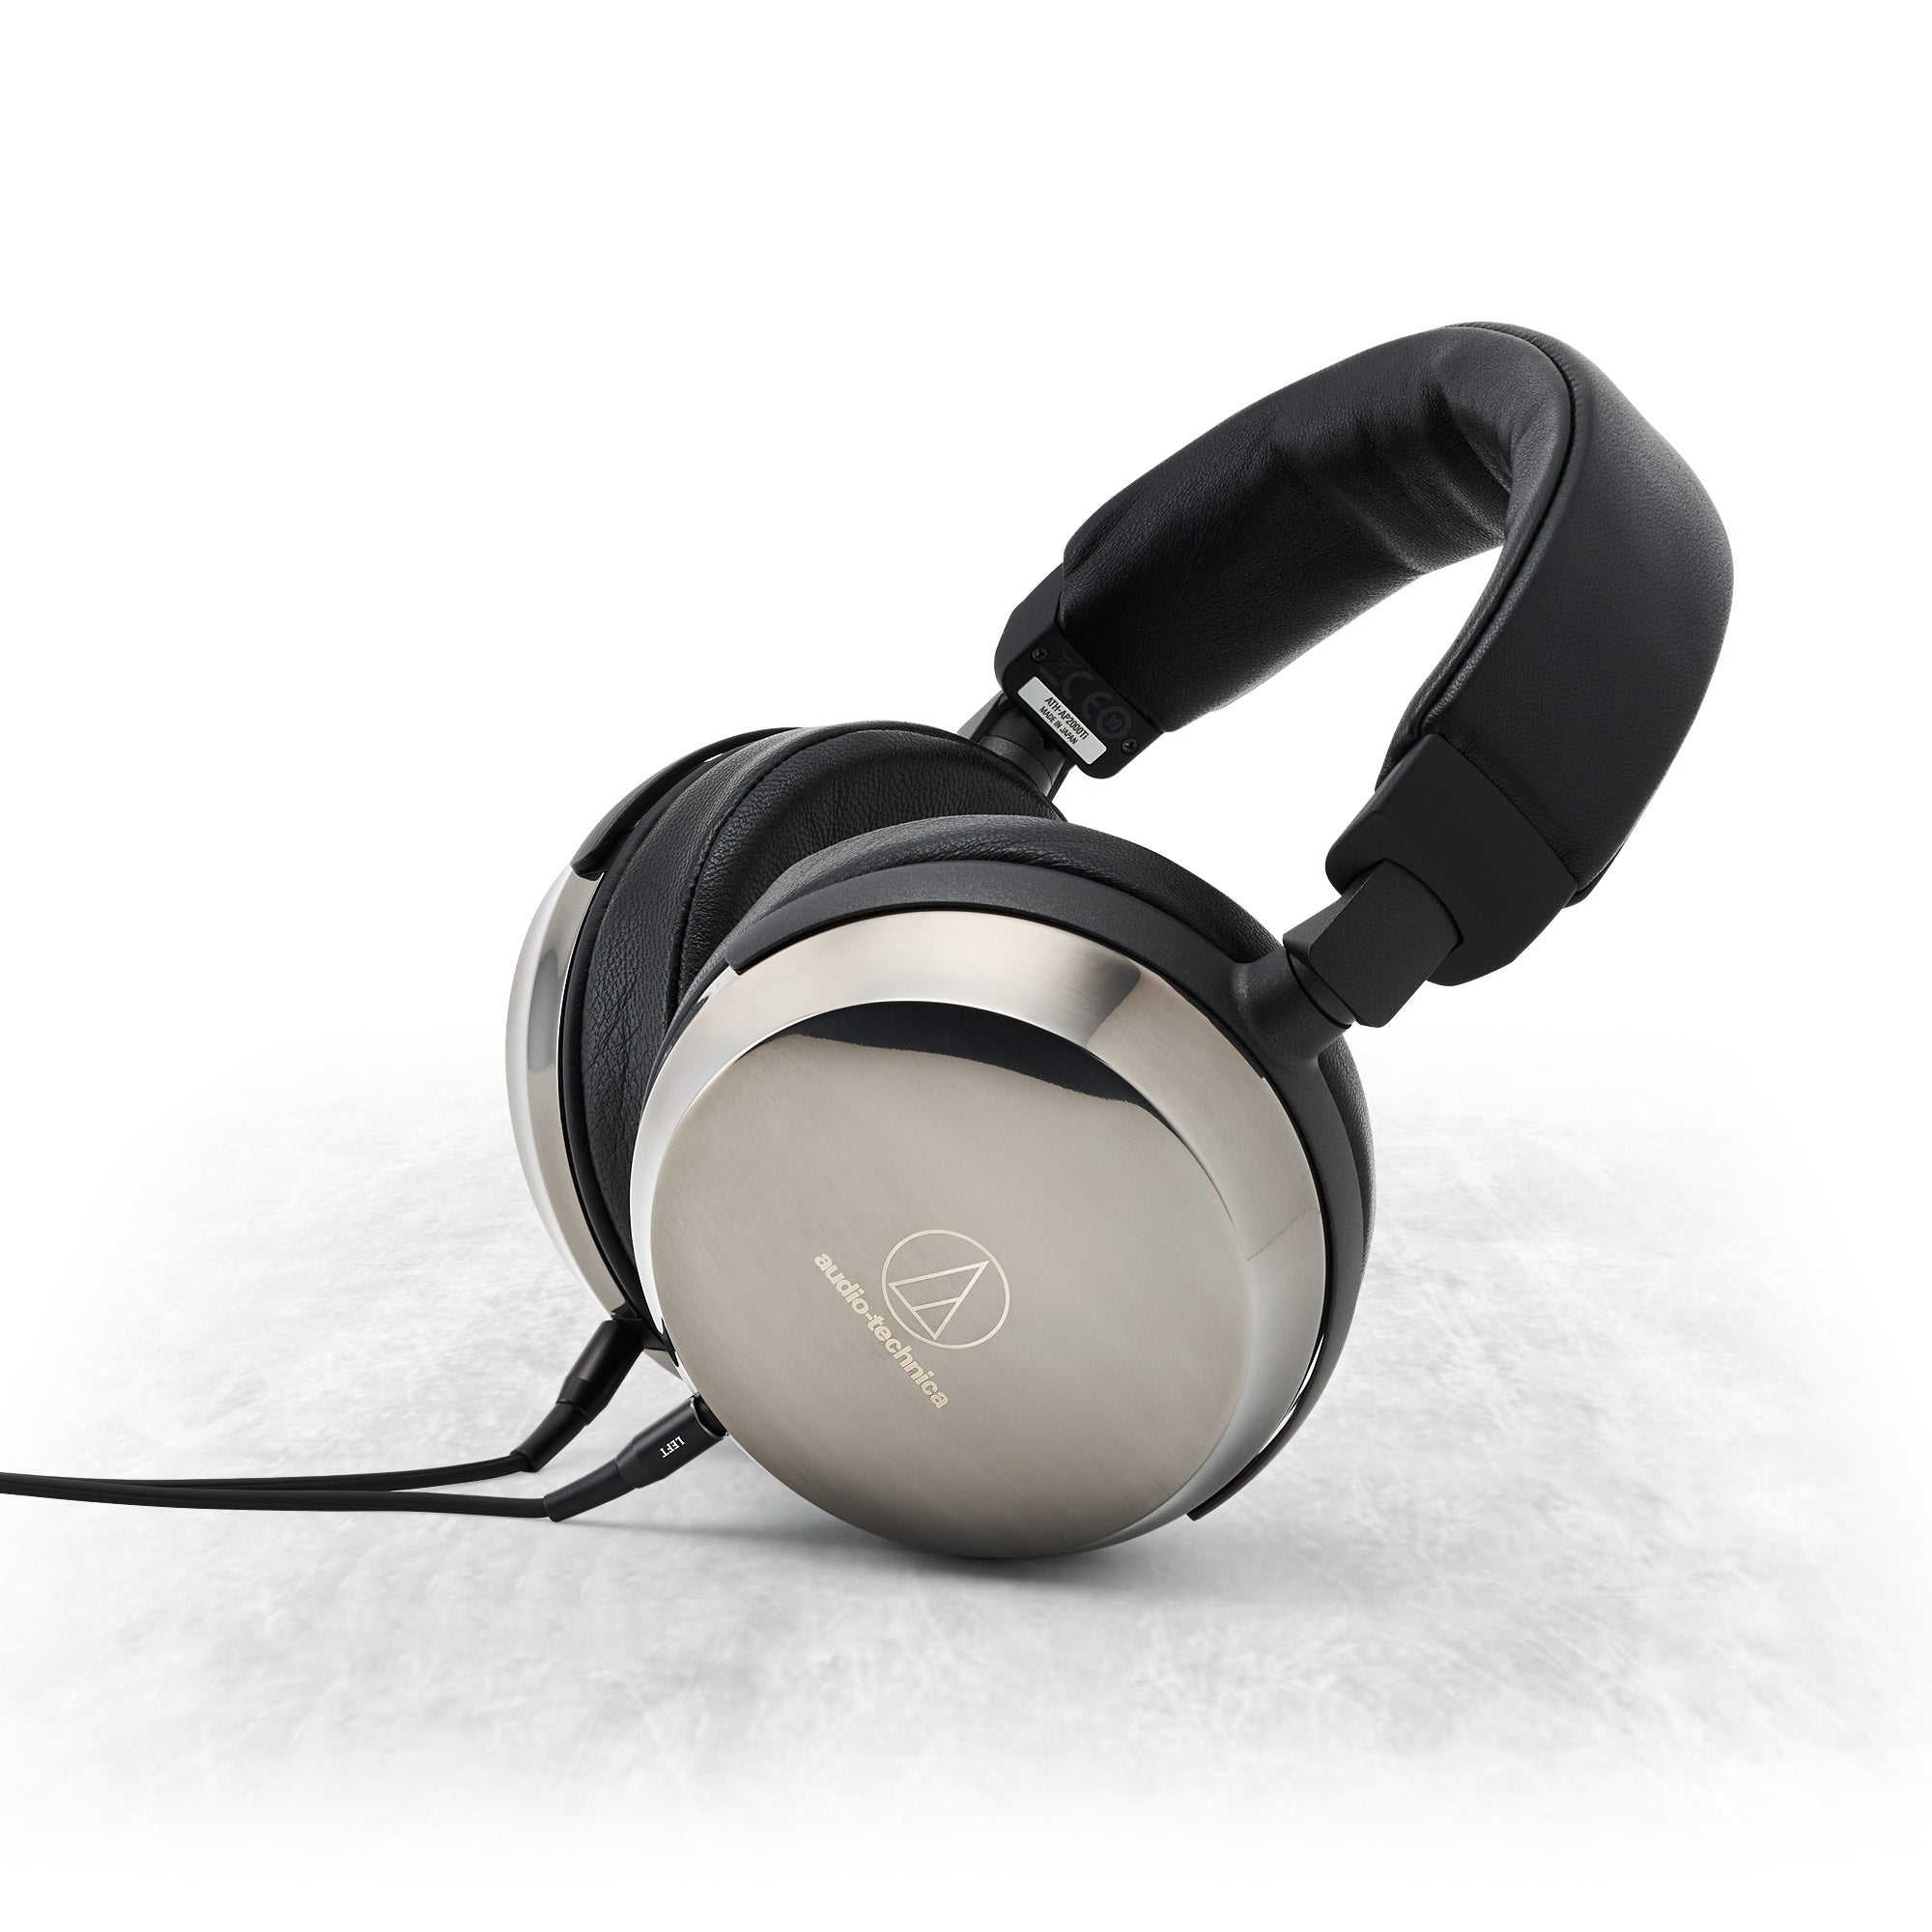 Audio-Technica ATH-AP2000Ti Headphones Review